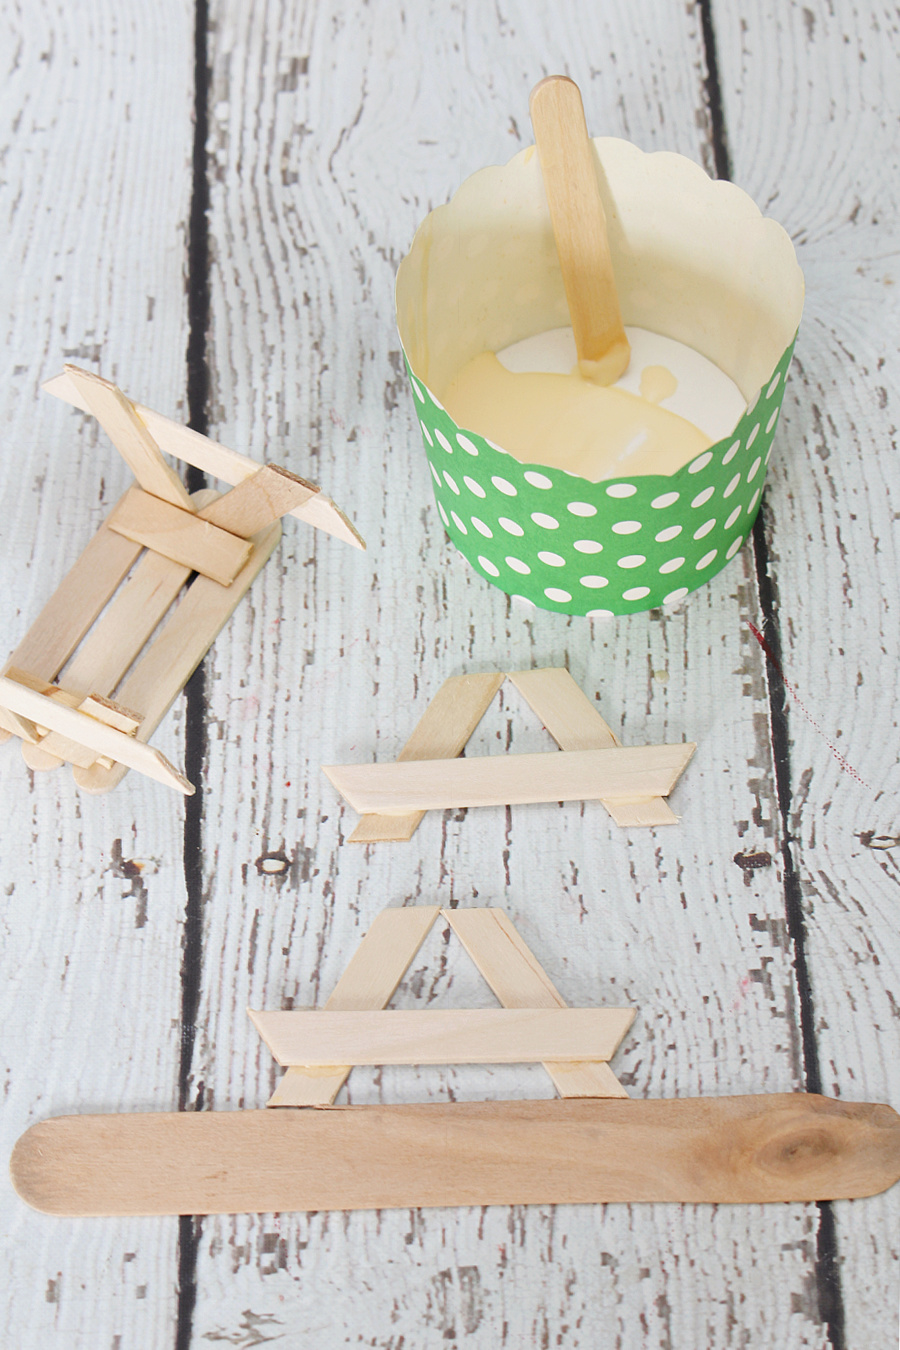 Step by step tutorial to make a popsicle stick picnic table.